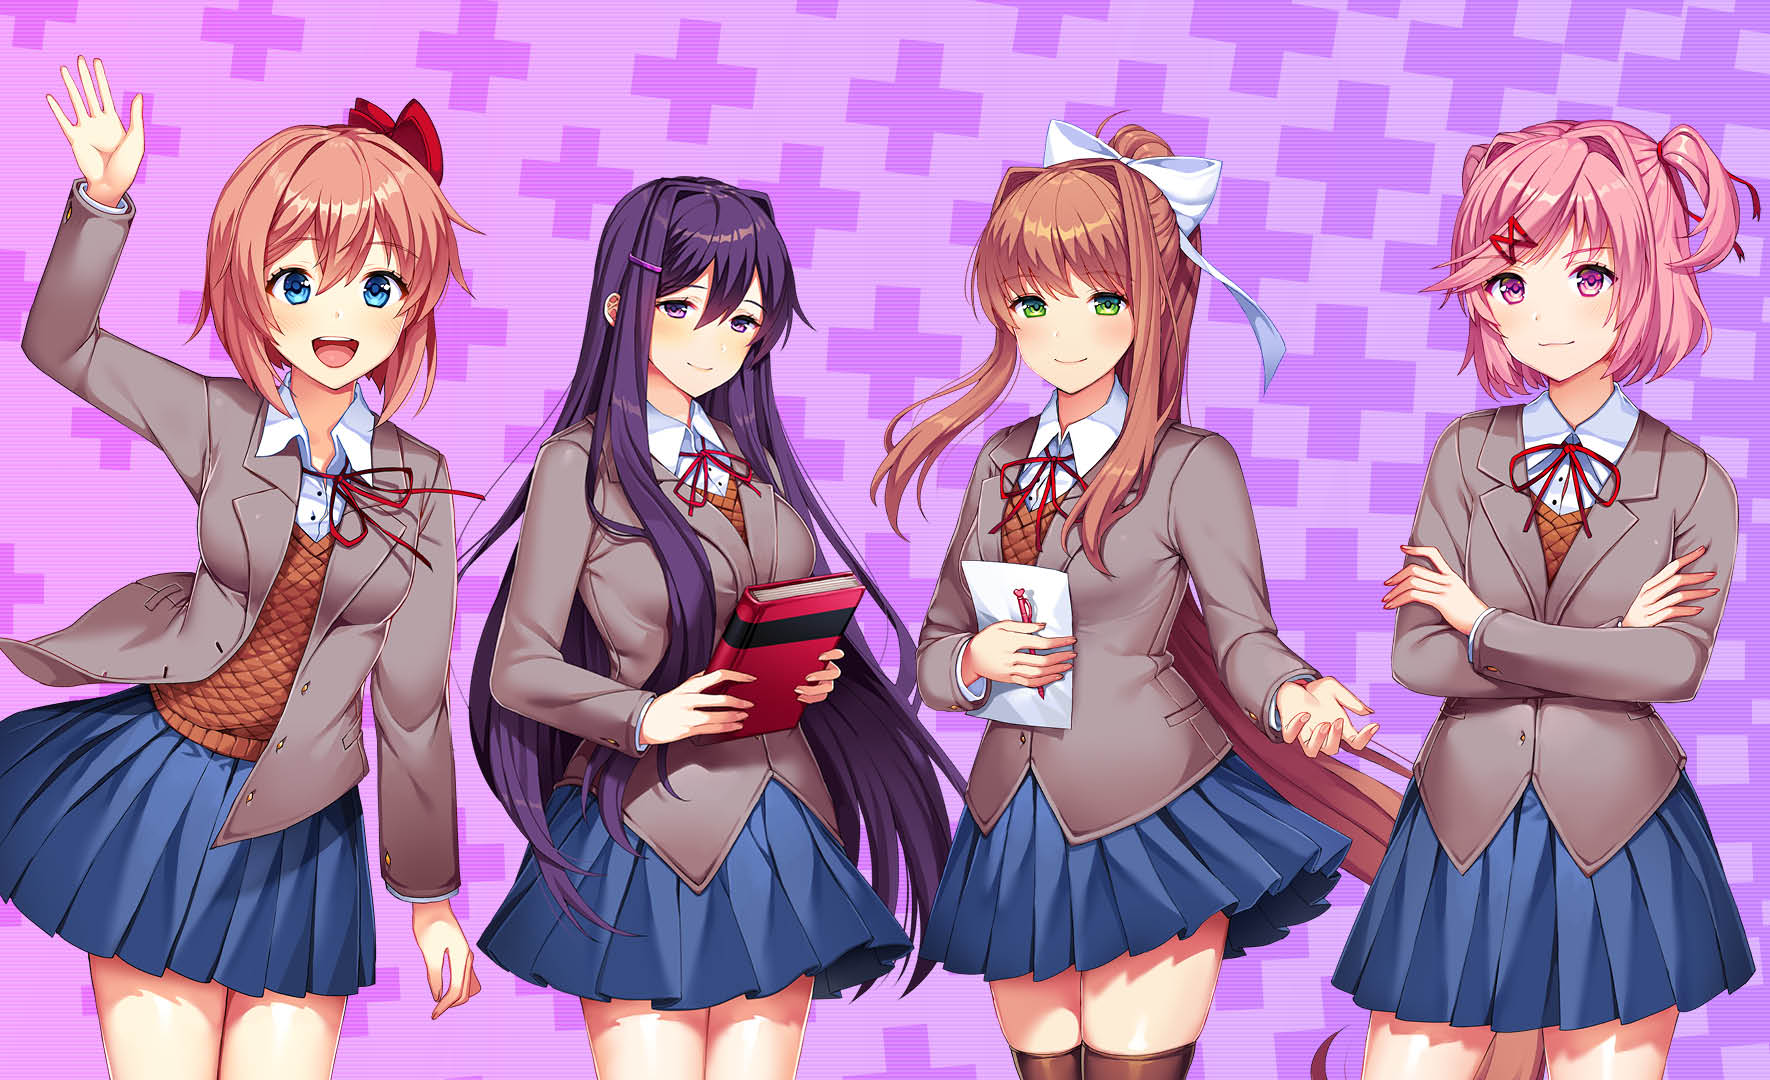 Showing the four main Characters in the Doki Doki Literature Club Plus Horror game